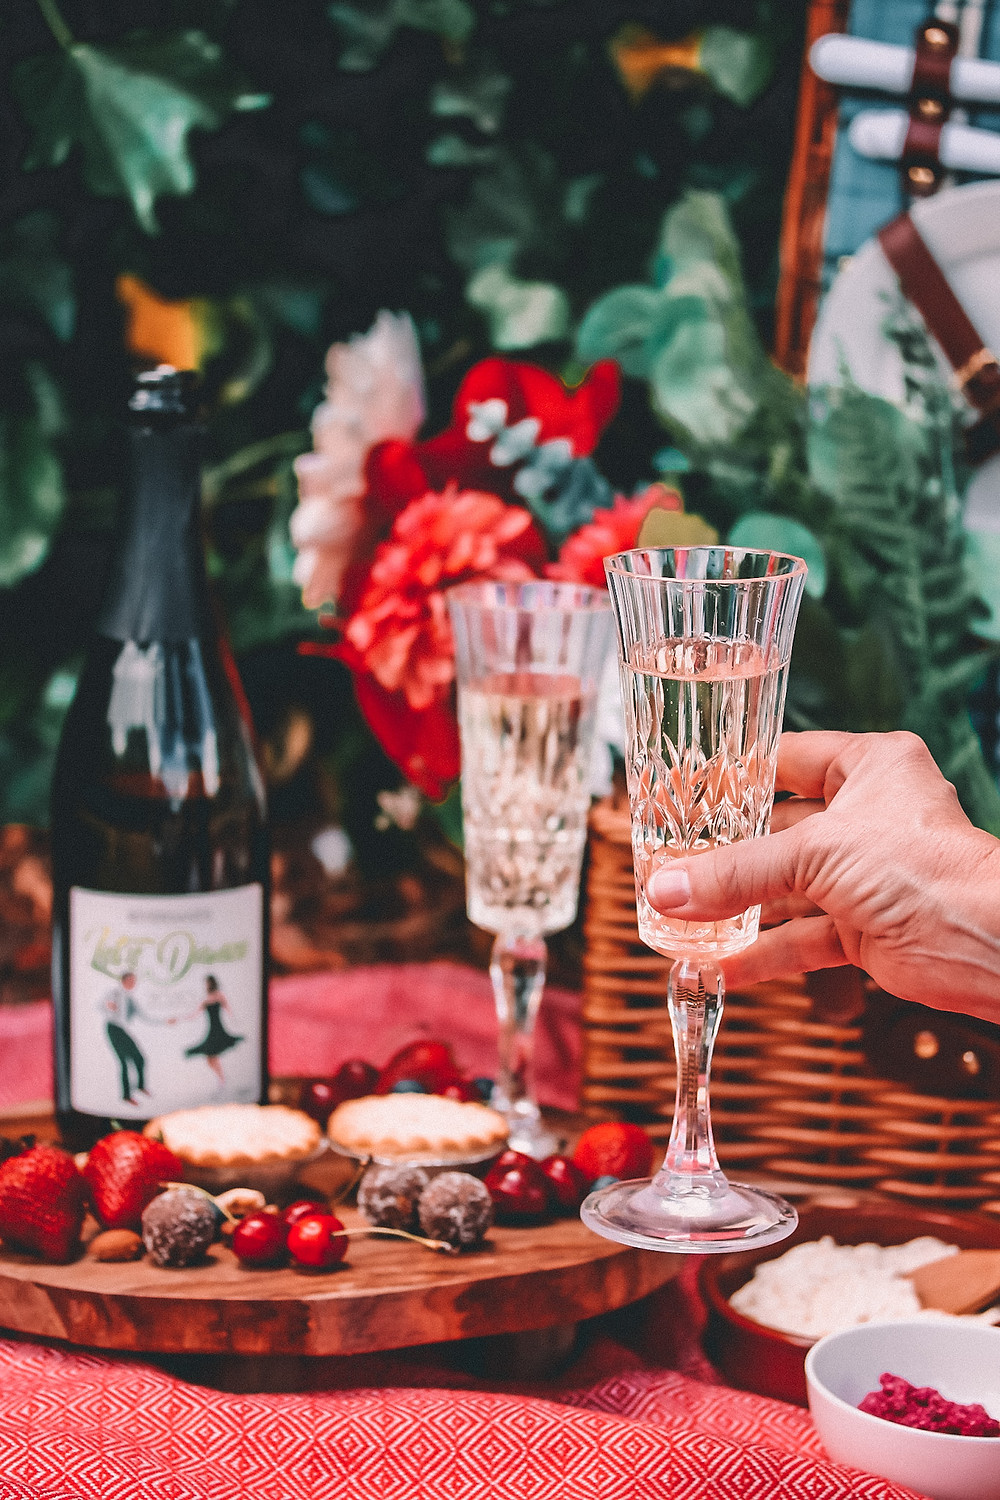 A glass of champagne at a romantic picnic